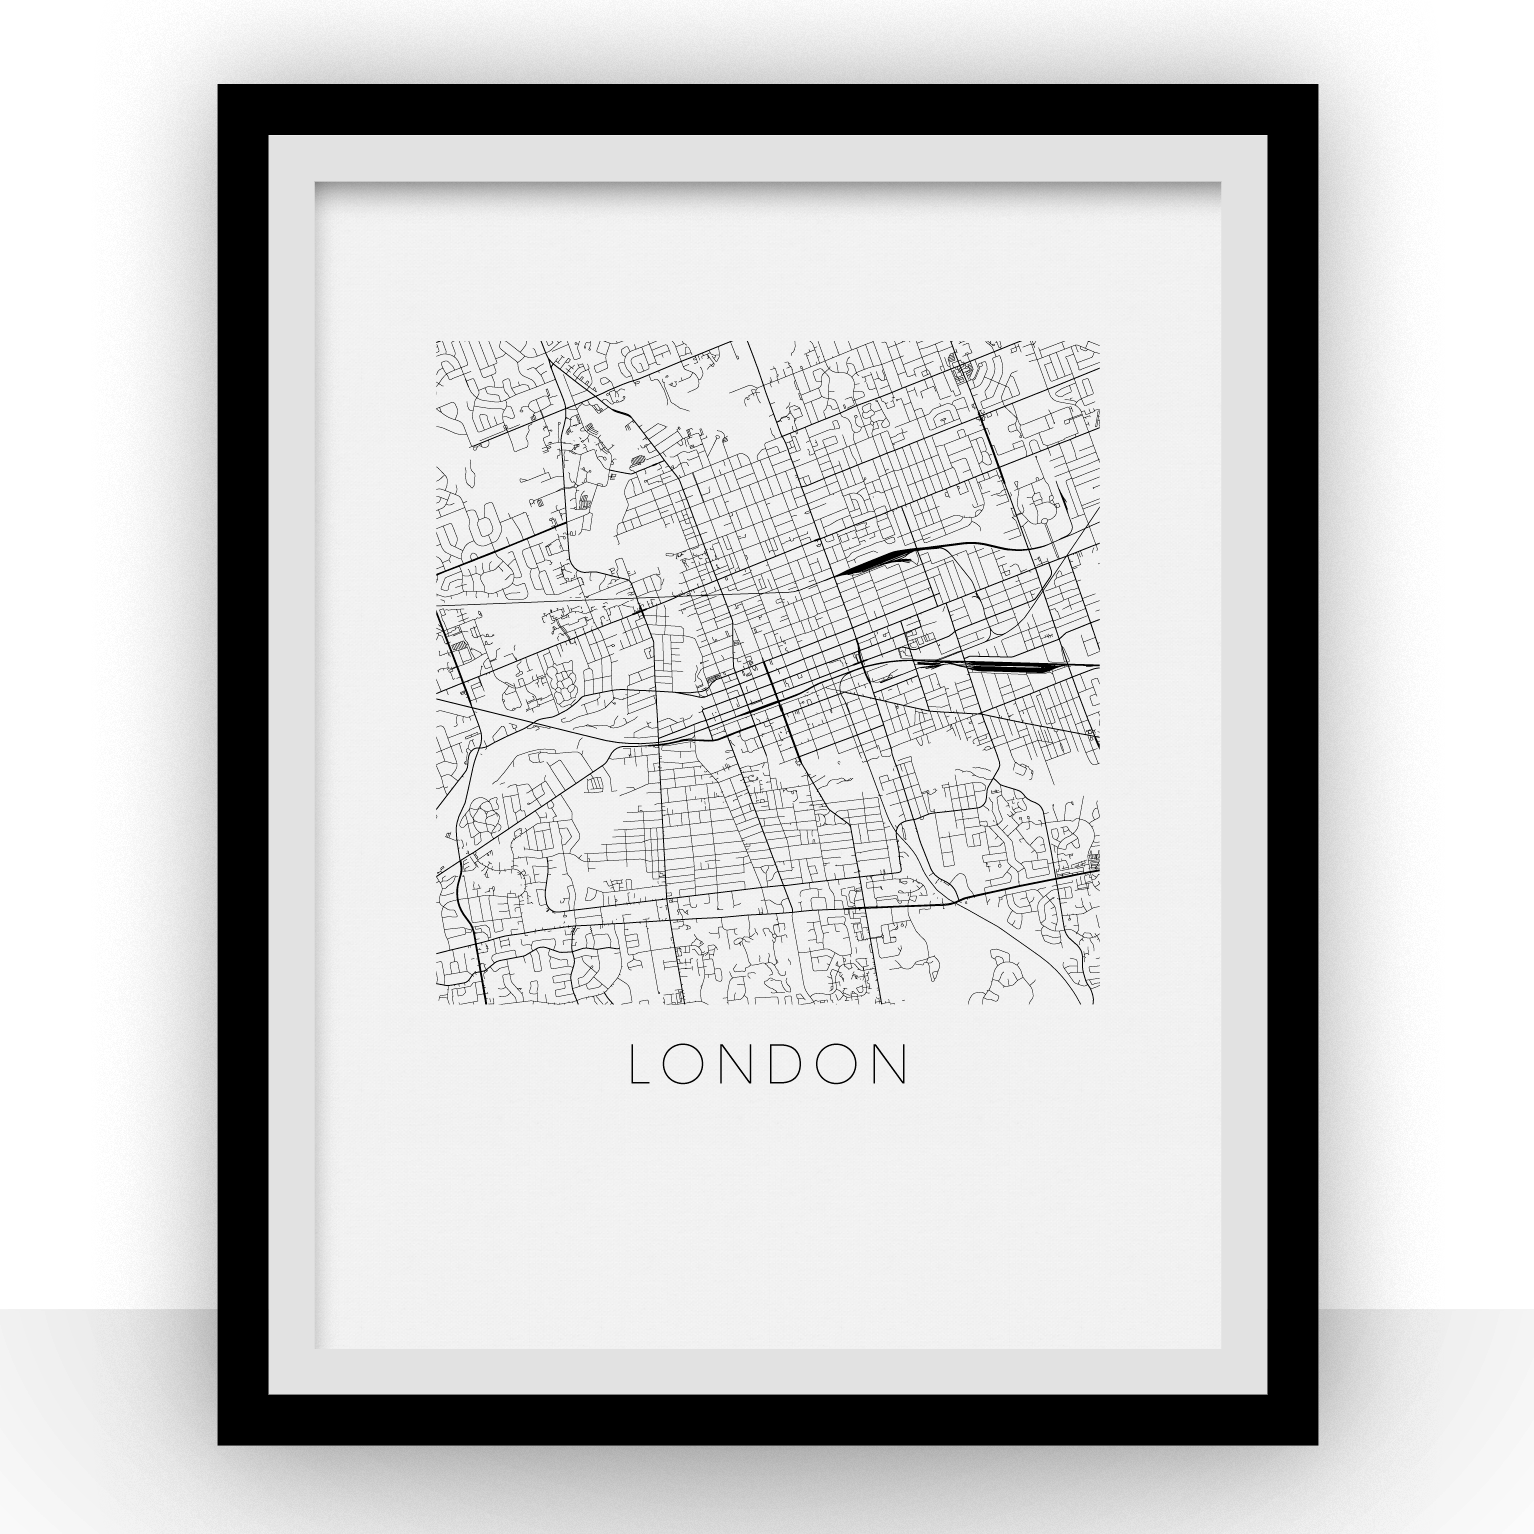 London Map Print - B&W